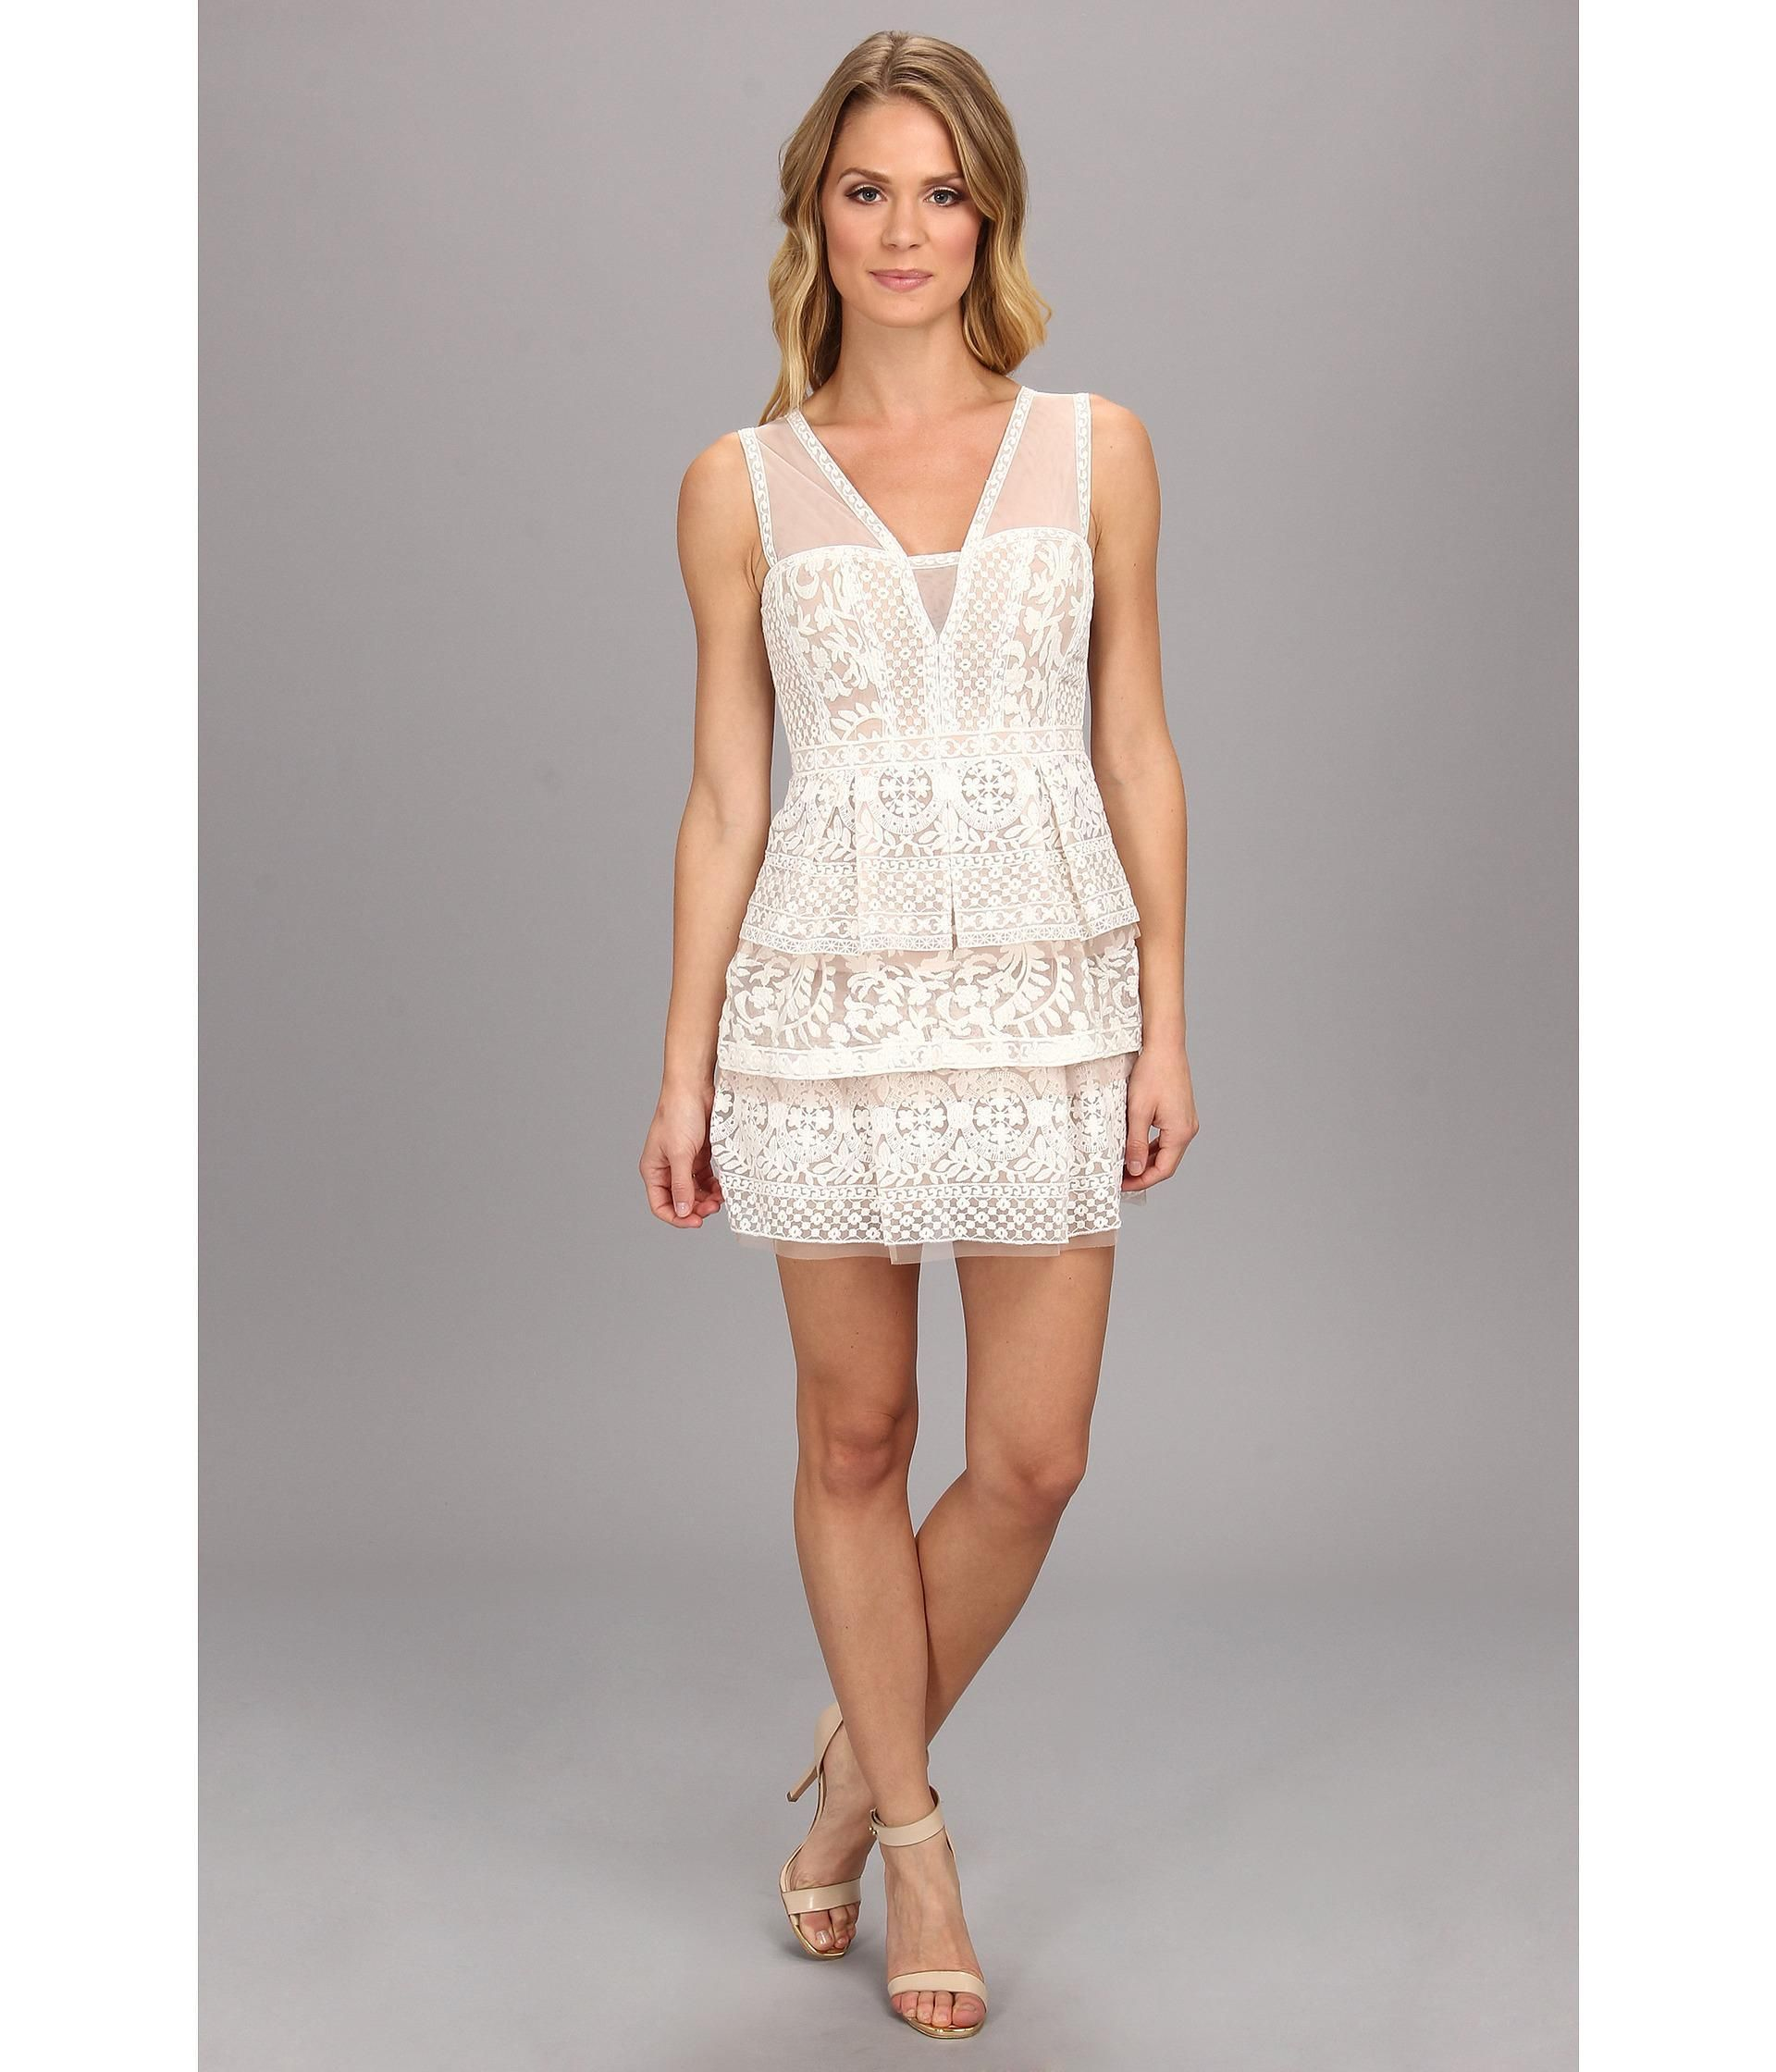 Sleeveless engineered lace dress flaunts tulle trim at tiered skirt